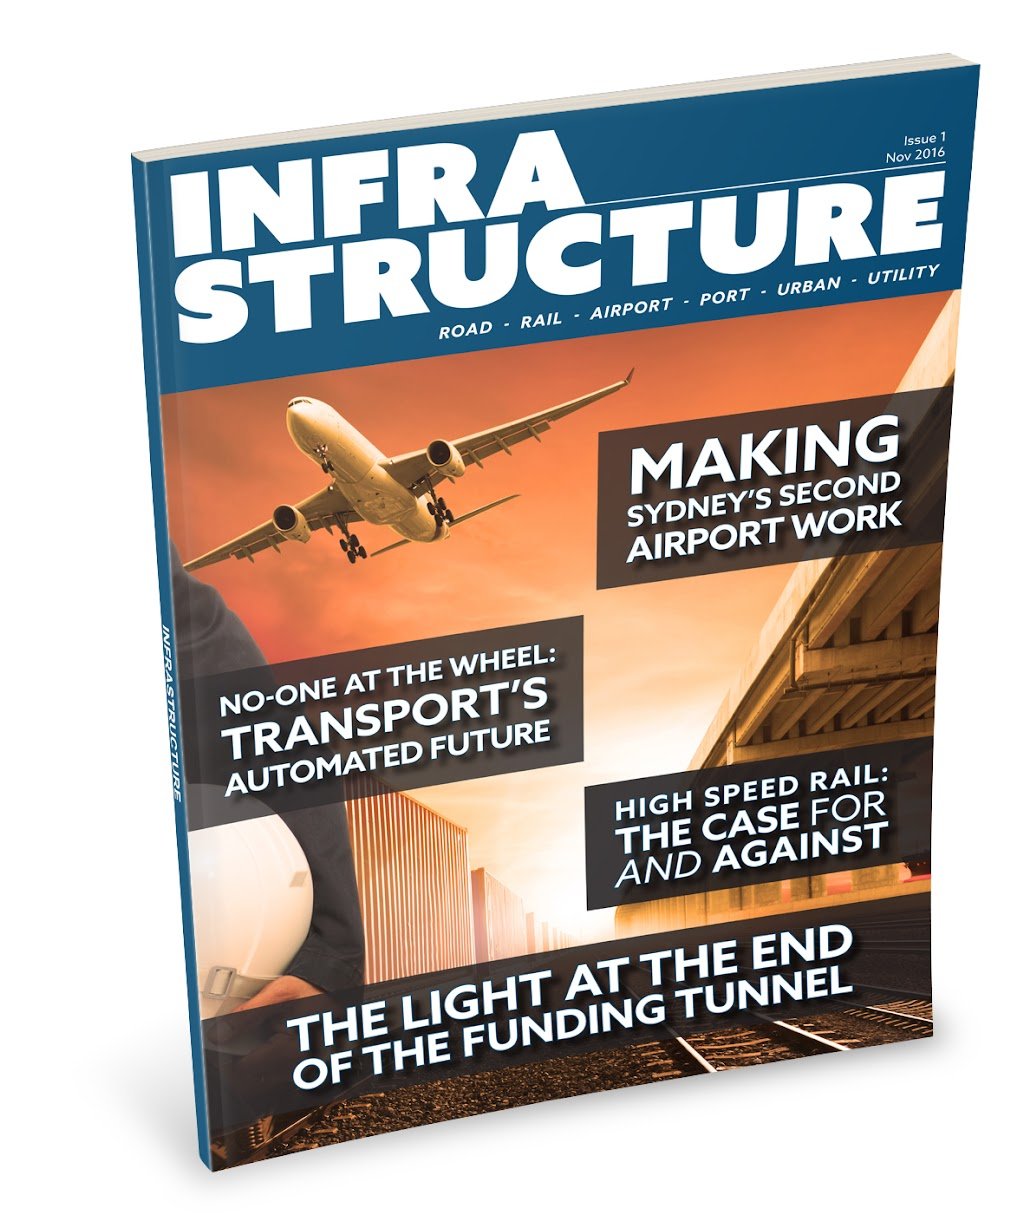 Physical copy of infrastructure magazine